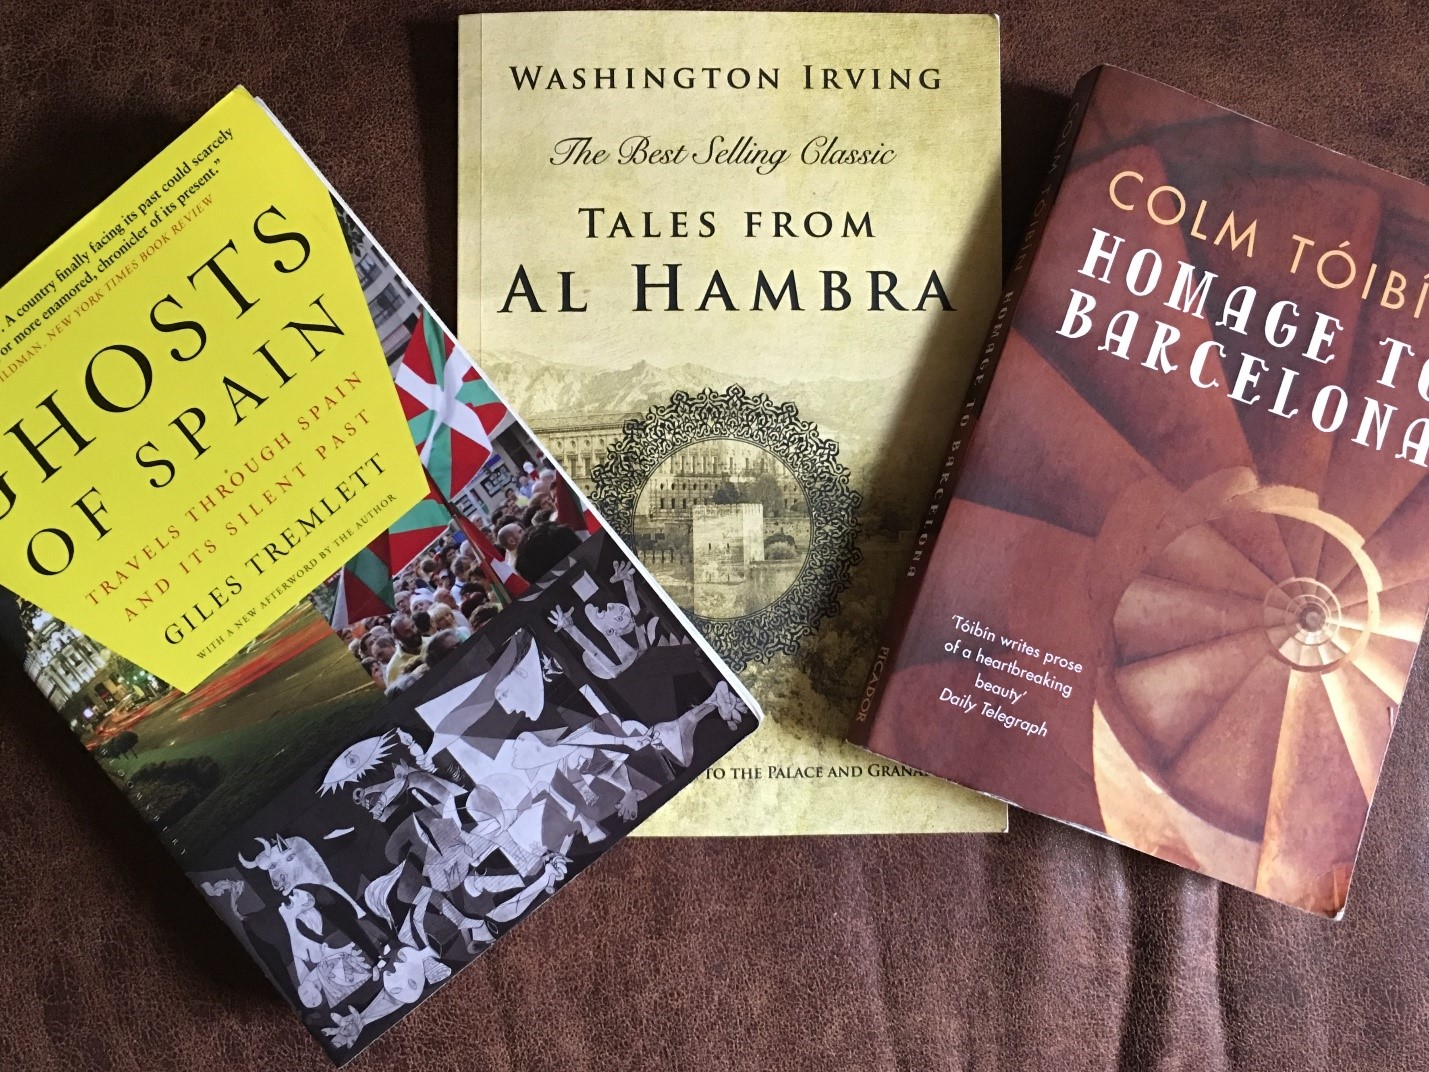 Not your typical Spain travel guides: Washington Irving, Giles Tremlett, and Colm Toibin.